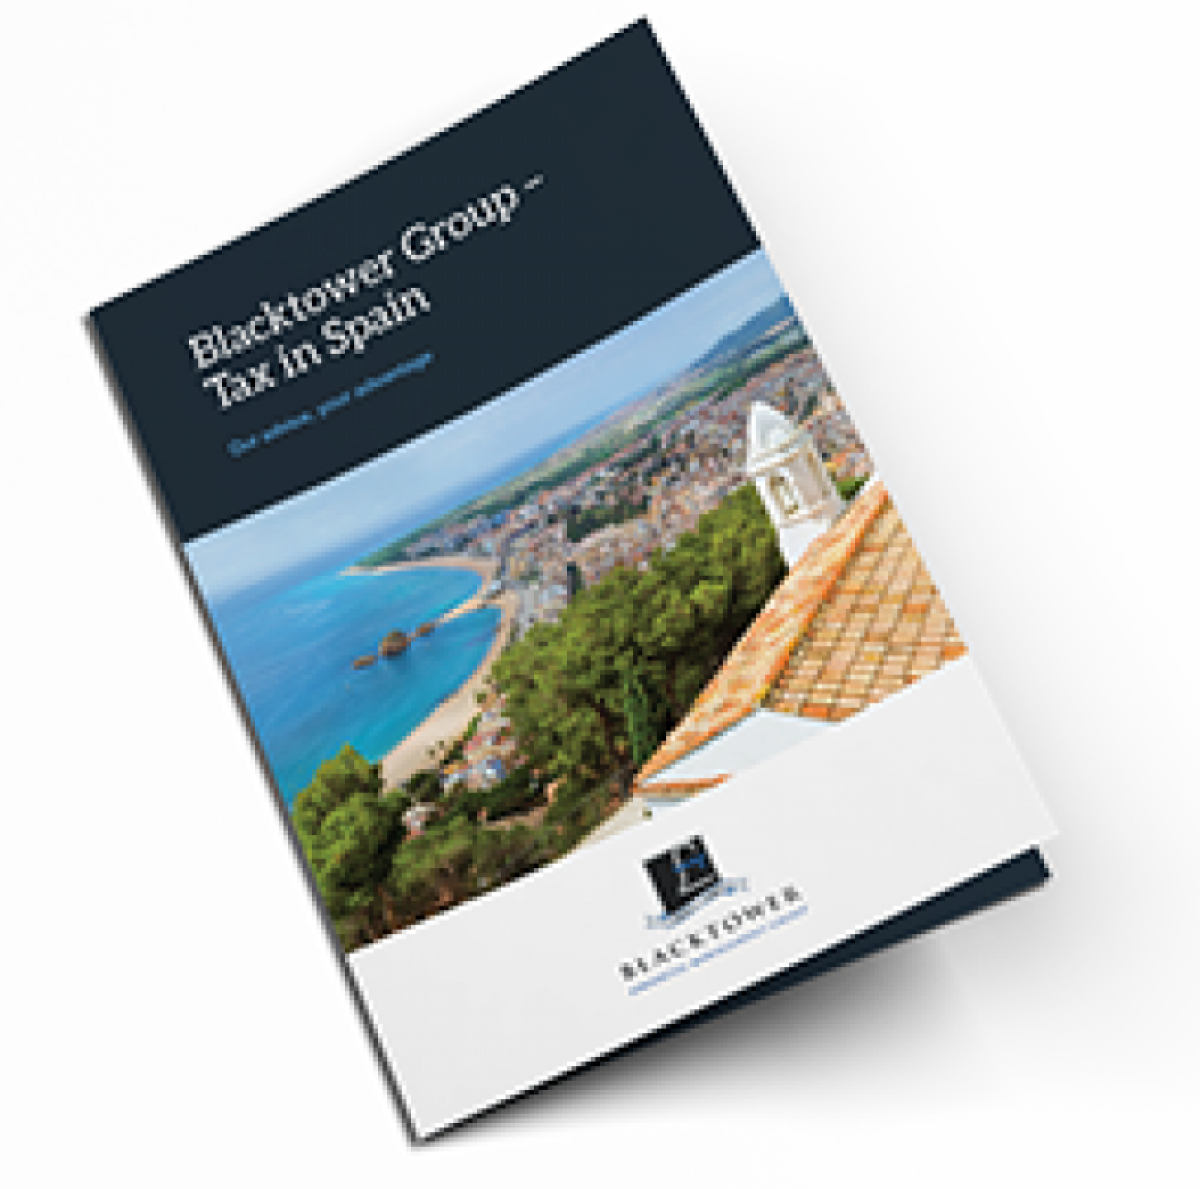 How to transfer your pension pot to Spain Blacktower Financial Management (Int) Ltd